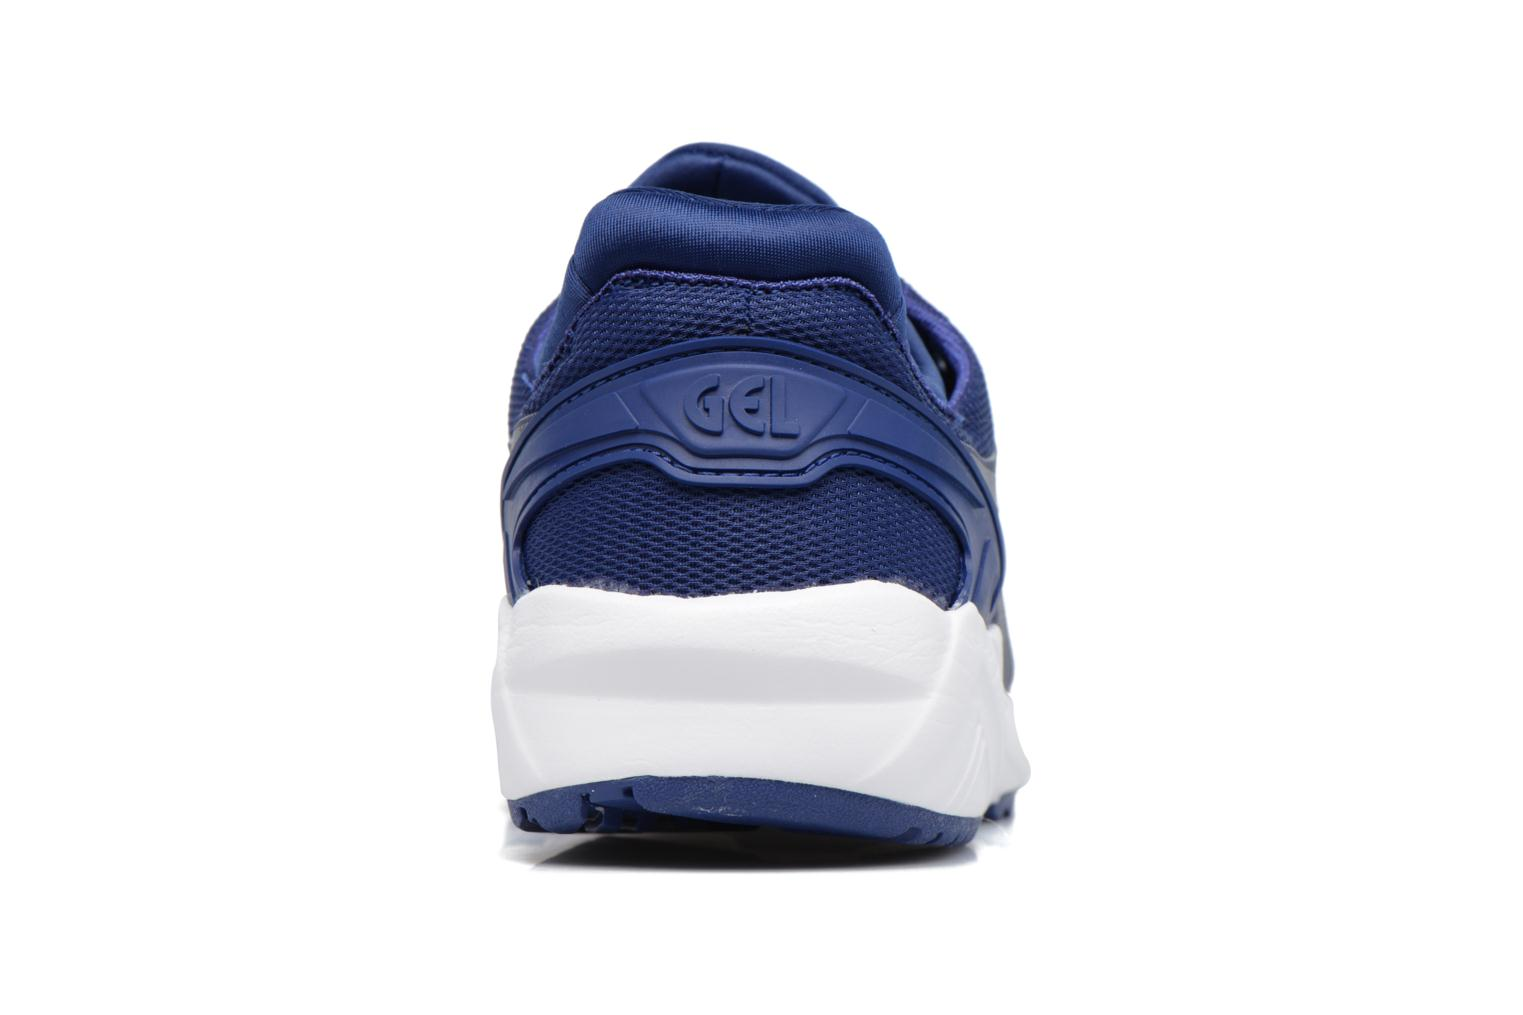 Gel Kayano Trainer EVO GS Navy Peony